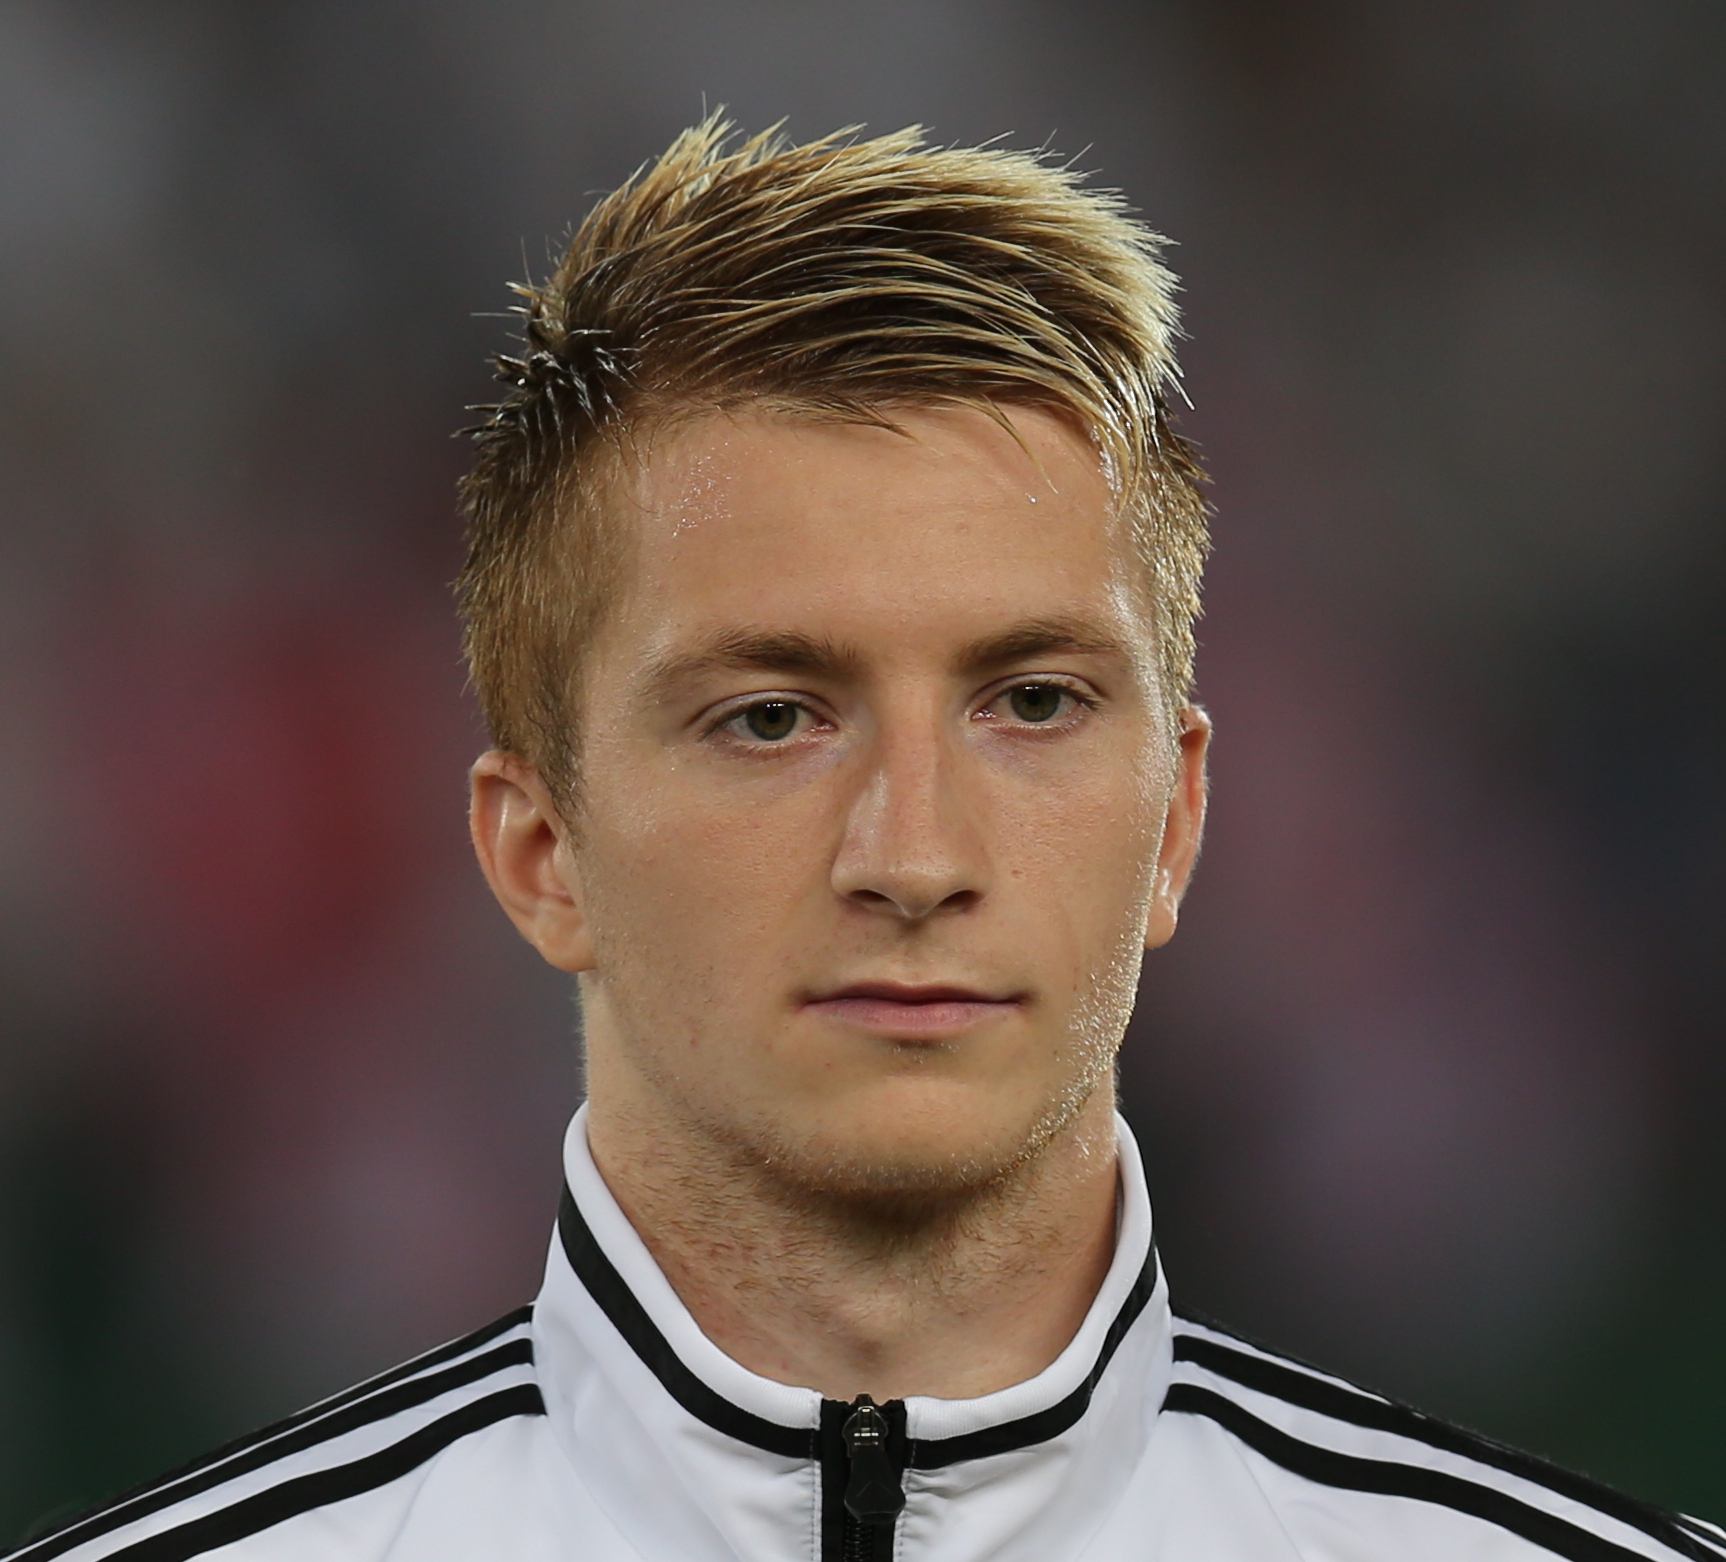 FIFA_WC-qualification_2014_-_Austria_vs._Germany_2012-09-11_-_Marco_Reus_01.JPG